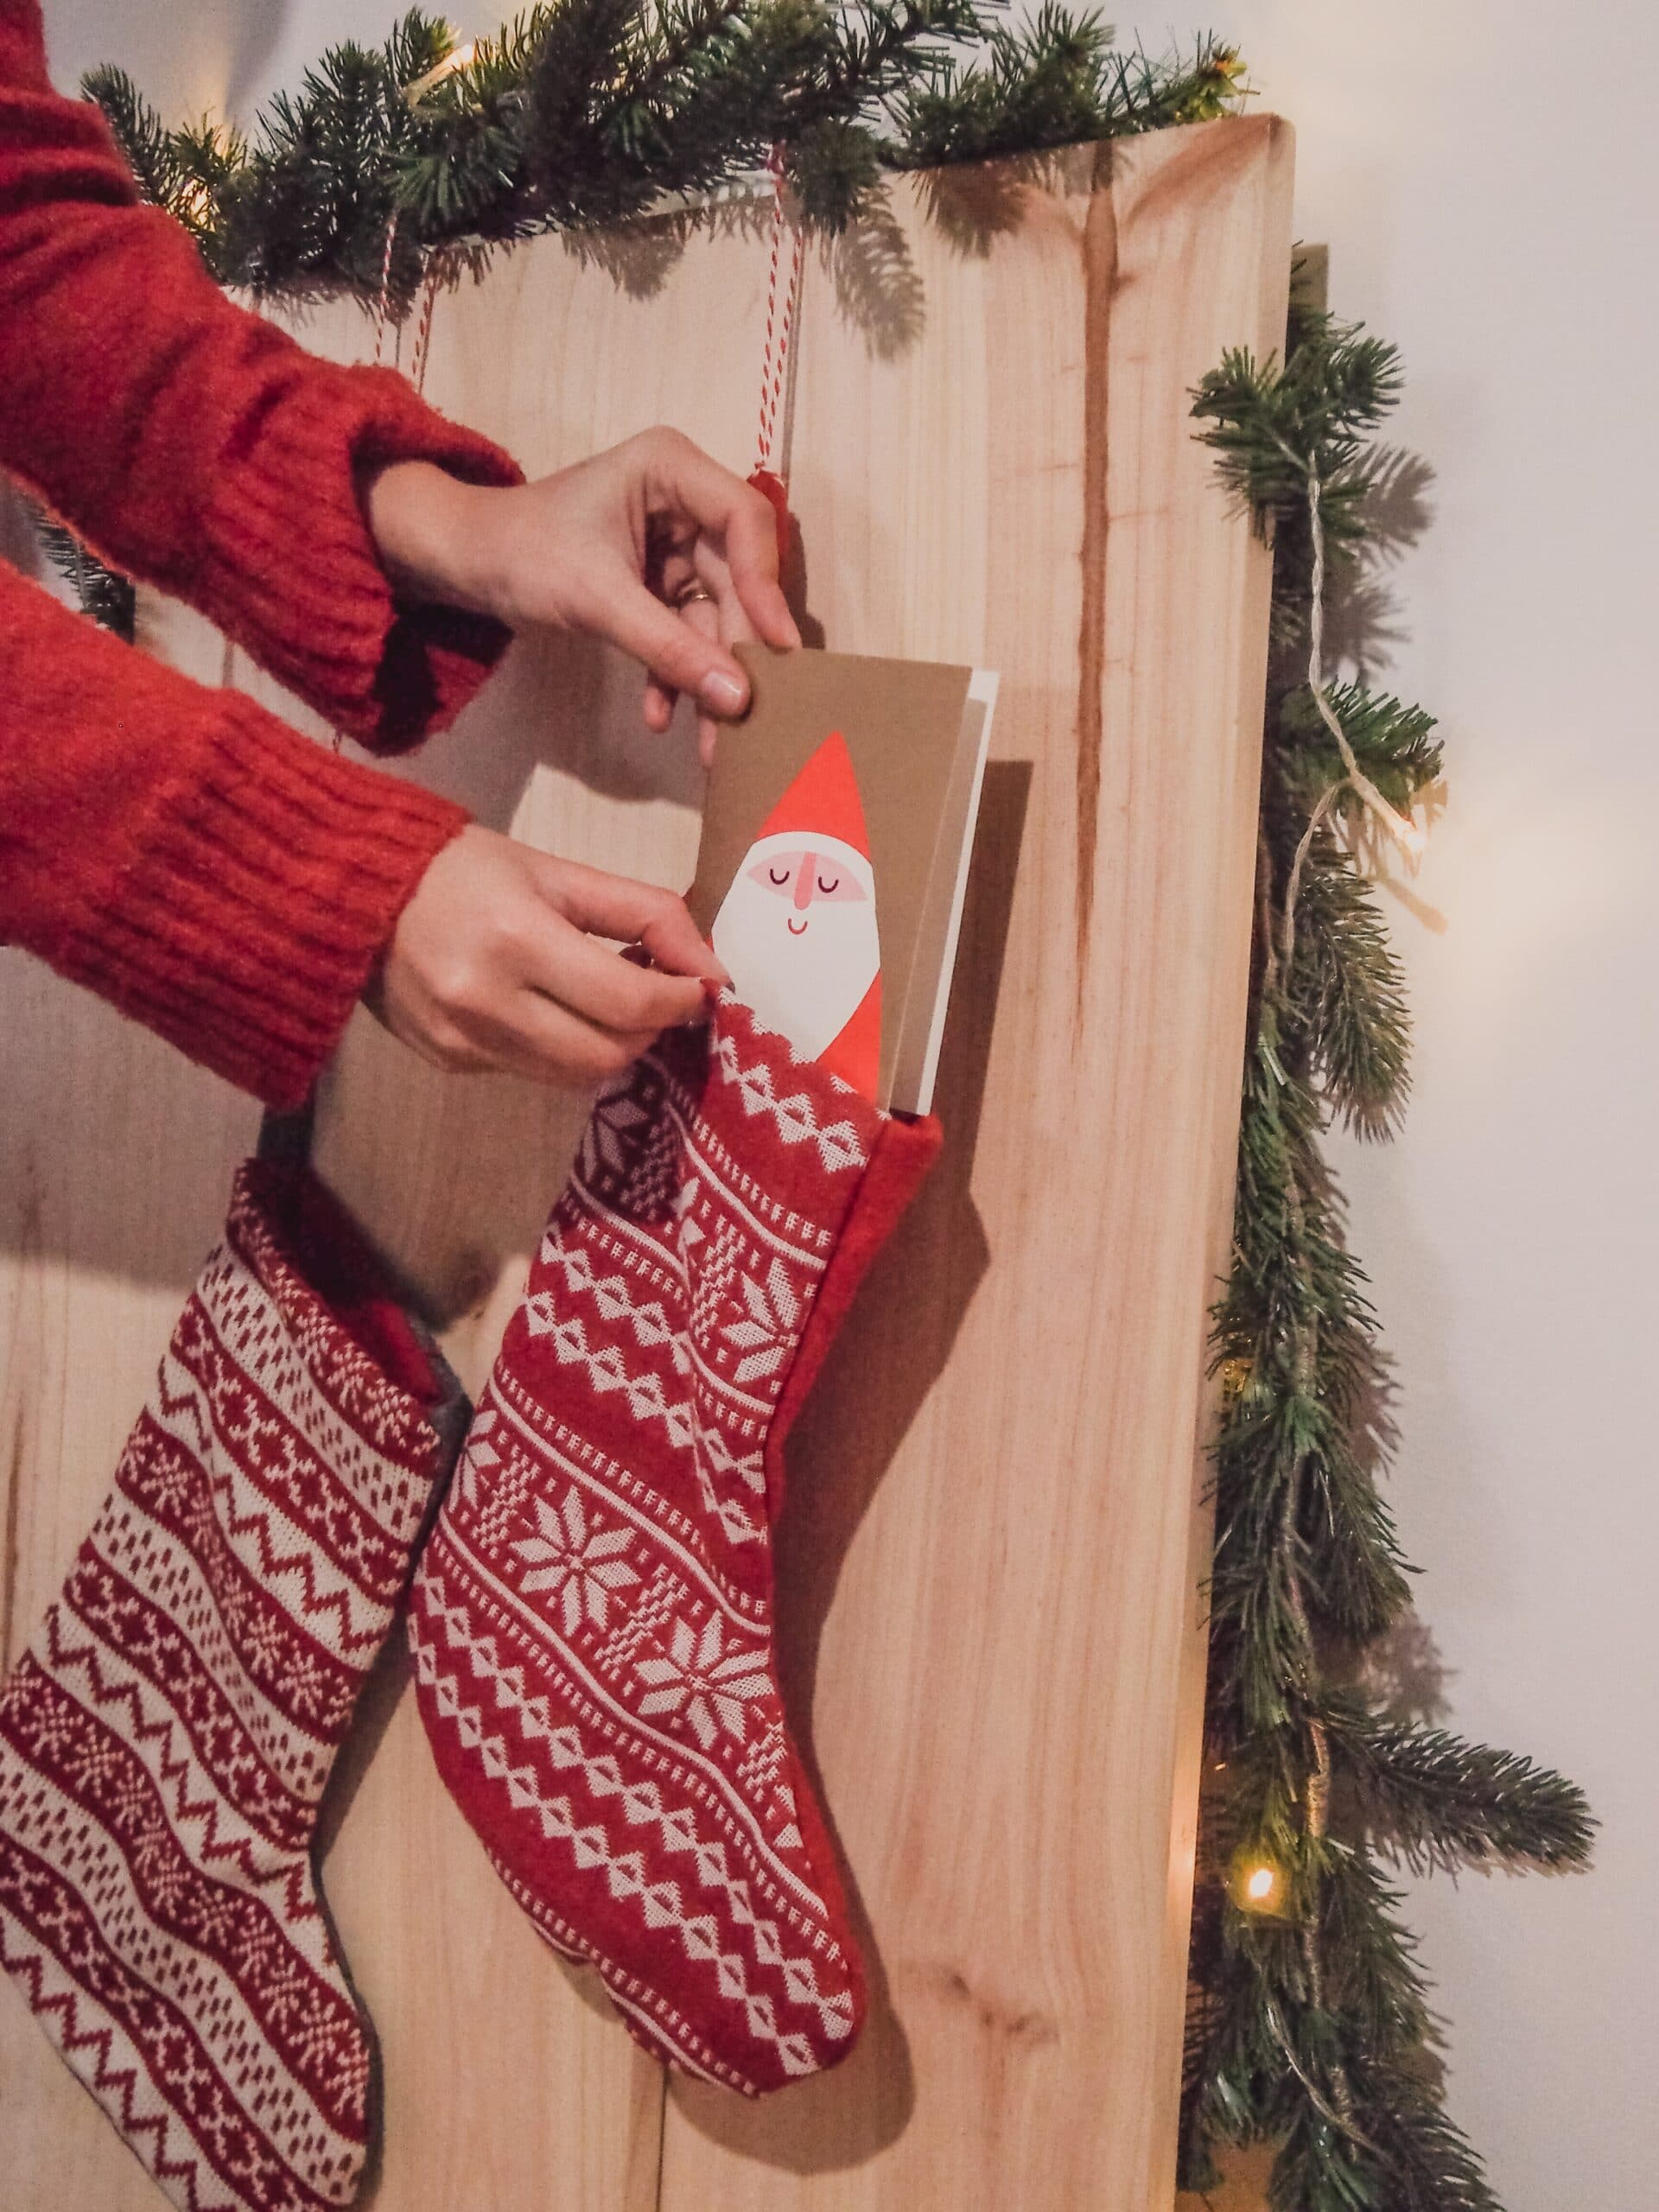 This list of The Best Christmas Party Games for families is a guaranteed hit this holiday season. Add some fun and exciting party games to your holiday gathering that will make a Christmas everyone will remember!